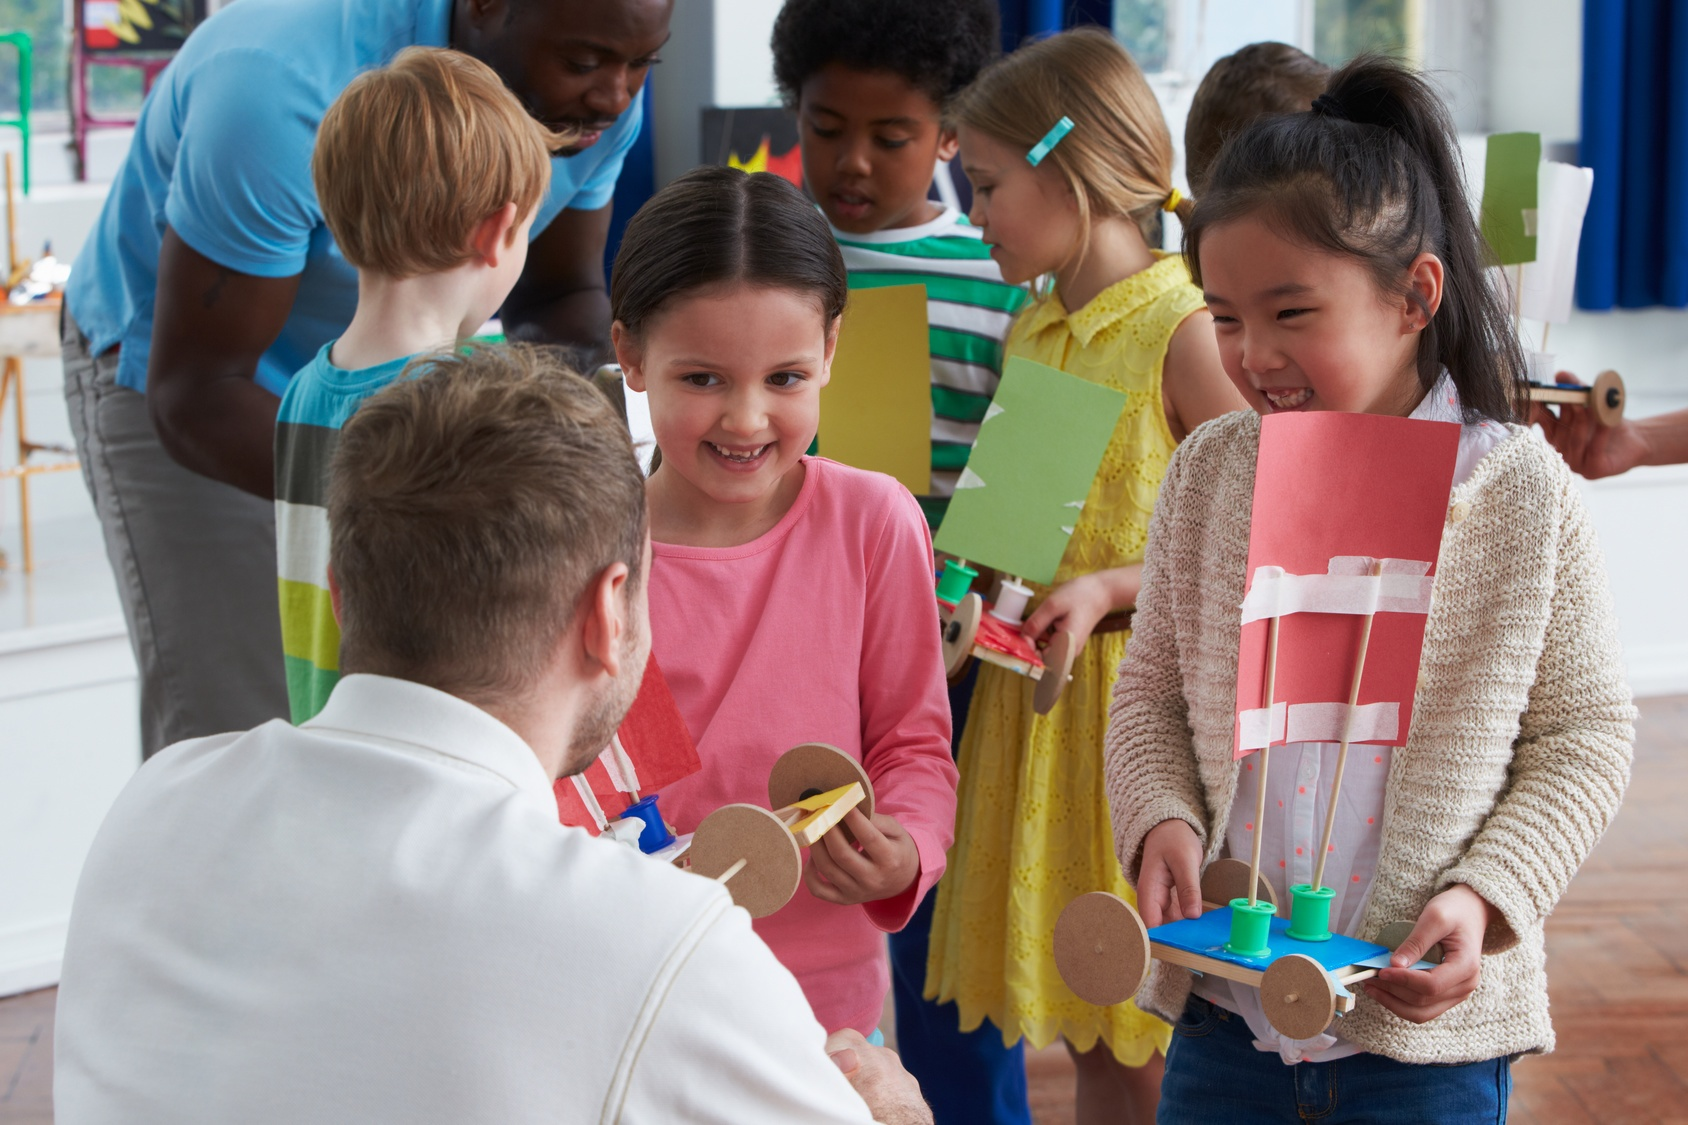 little kids with prototypes_87283808_Subscription_Monthly_M.jpg